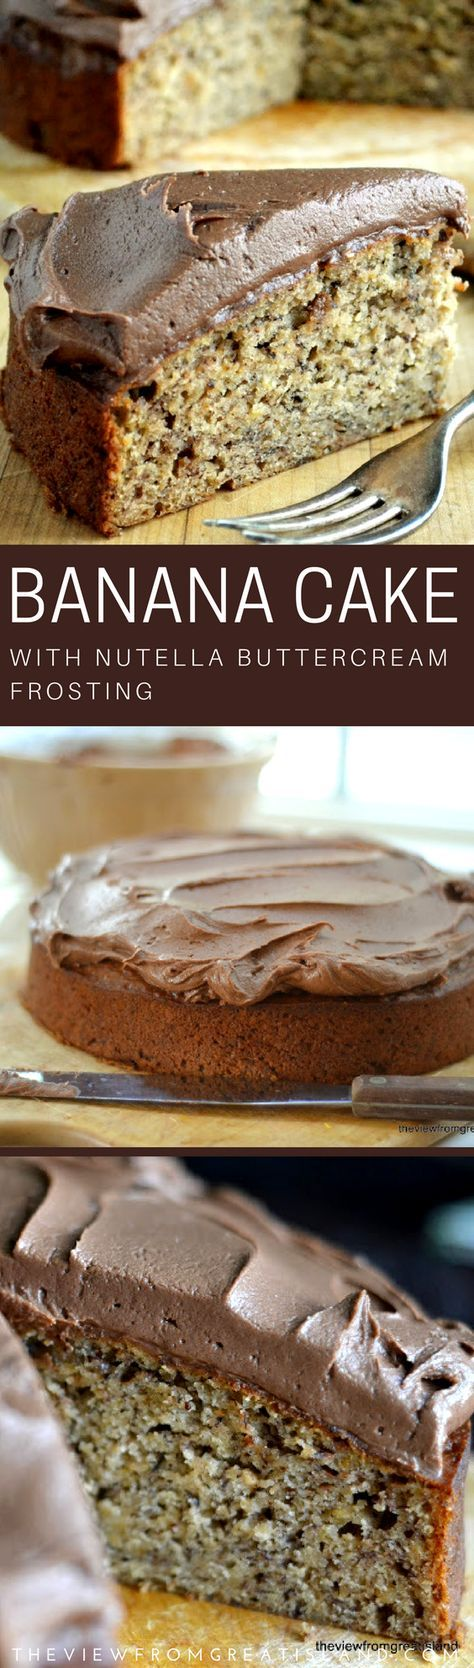 Banana Cake with Nutella Buttercream ~ a fabulously moist banana cake made with toasted hazelnuts and topped with a thick layer of chocolatey hazelnut buttercream ~ oooh la la! #bananabread #nutella #nutellafrosting #chocolate #cake #dessert #buttercream #frosting #snackcake #hazelnut